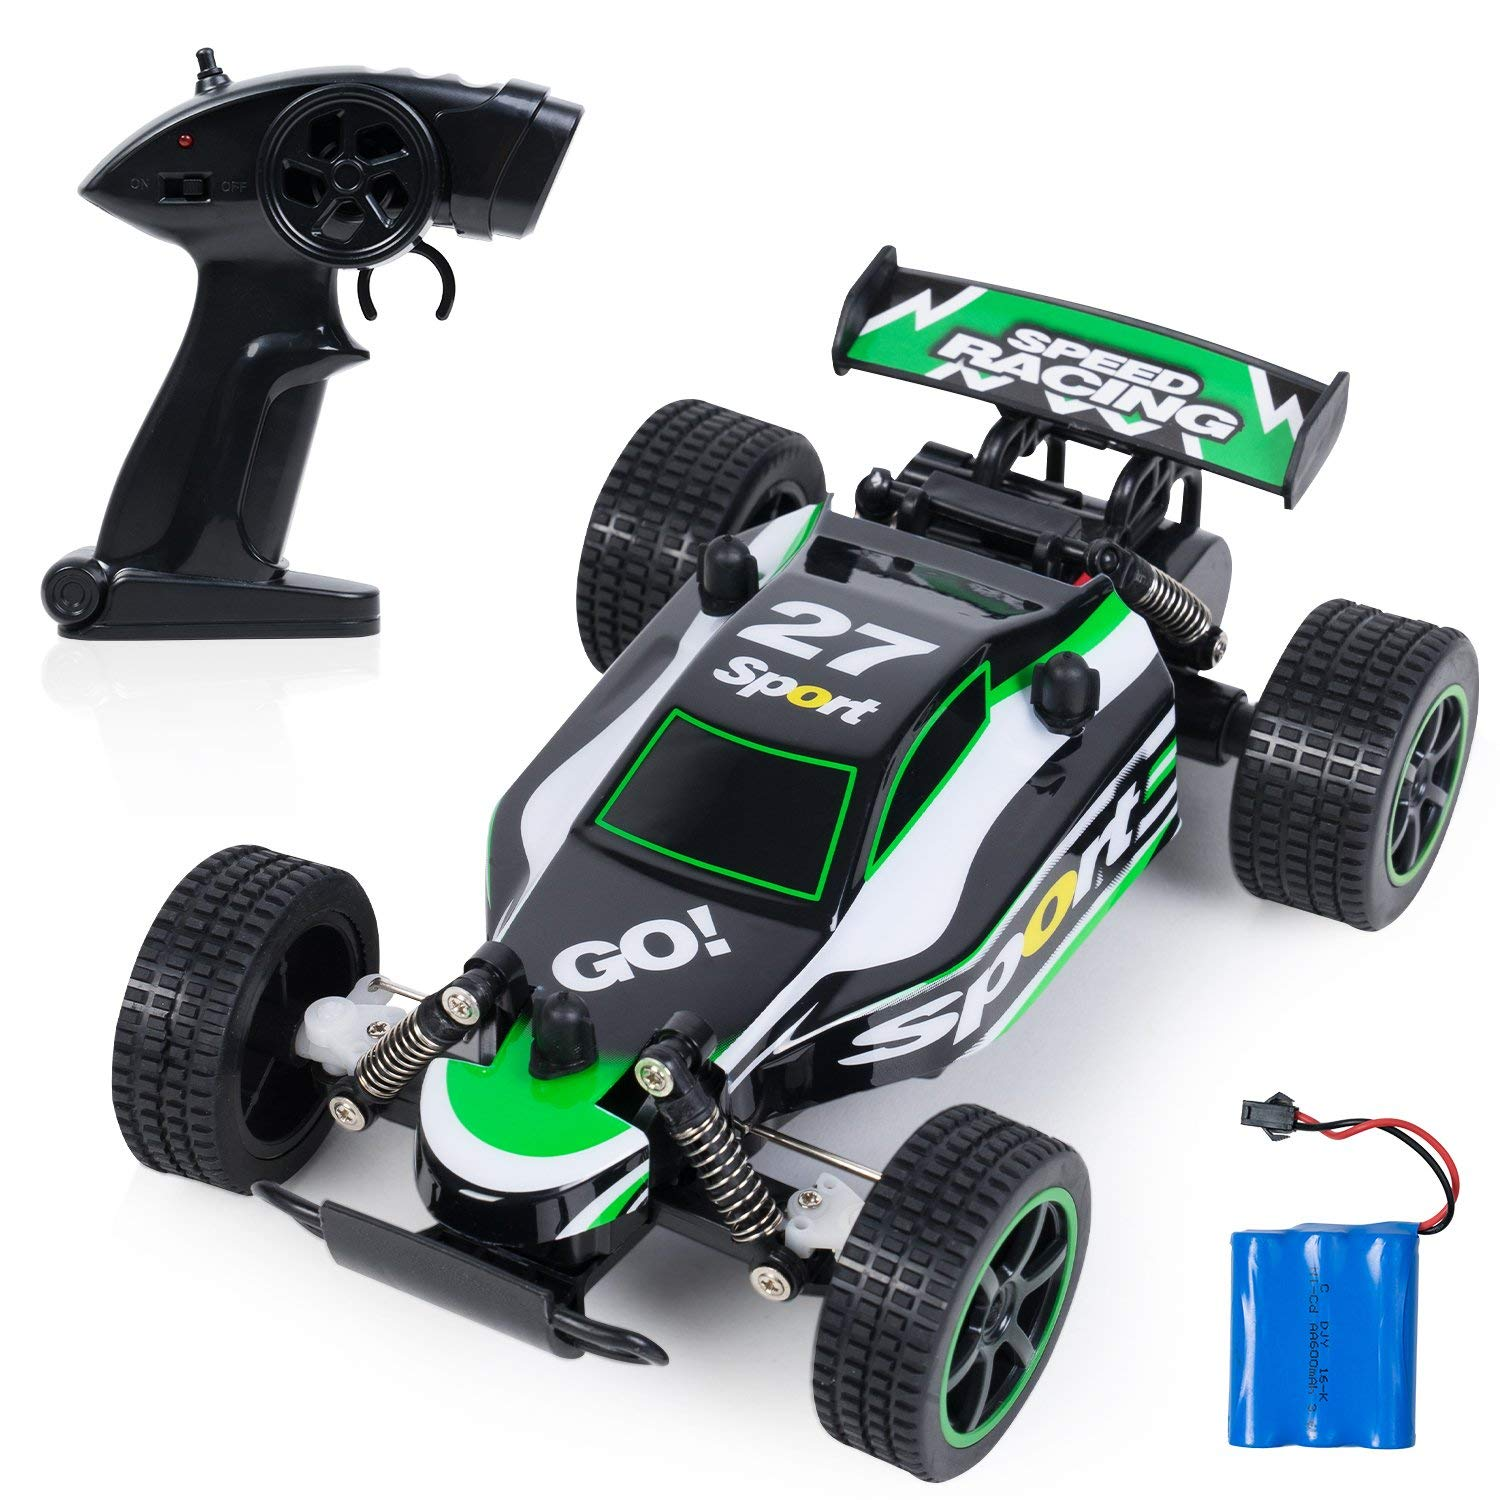 Toch RC Car Off-Road High Speed Car 1:20 Remote Control Racing Car for Boys Kids, 2.4Ghz 2WD Fast Race Buggy Hobby Electric Vehicle Car, Green